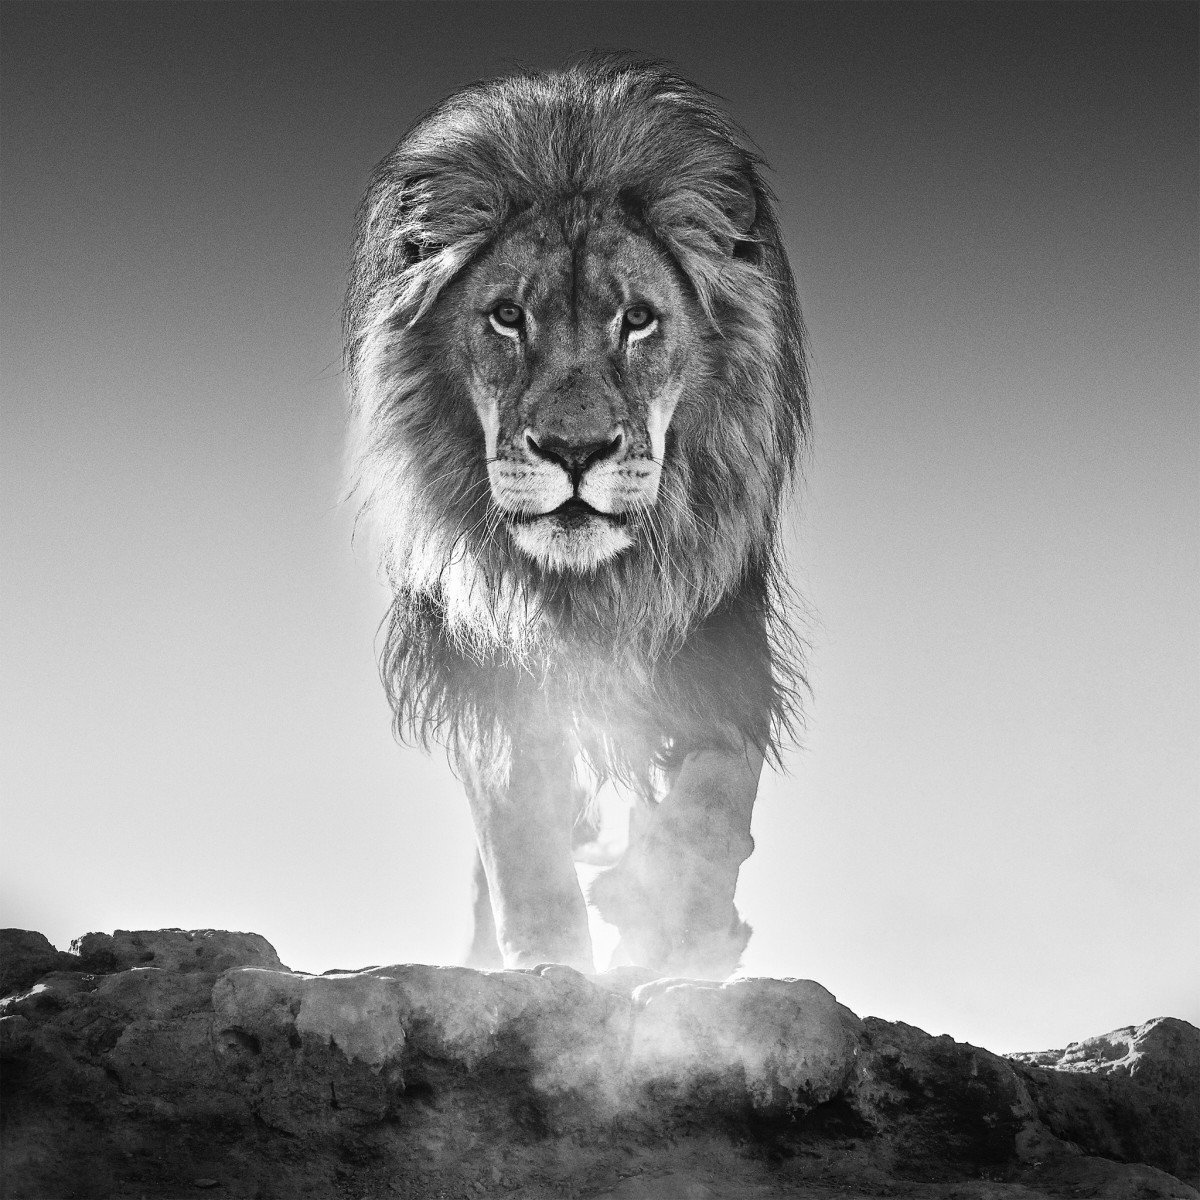 PODCAST | IN FOCUS WITH DAVID YARROW